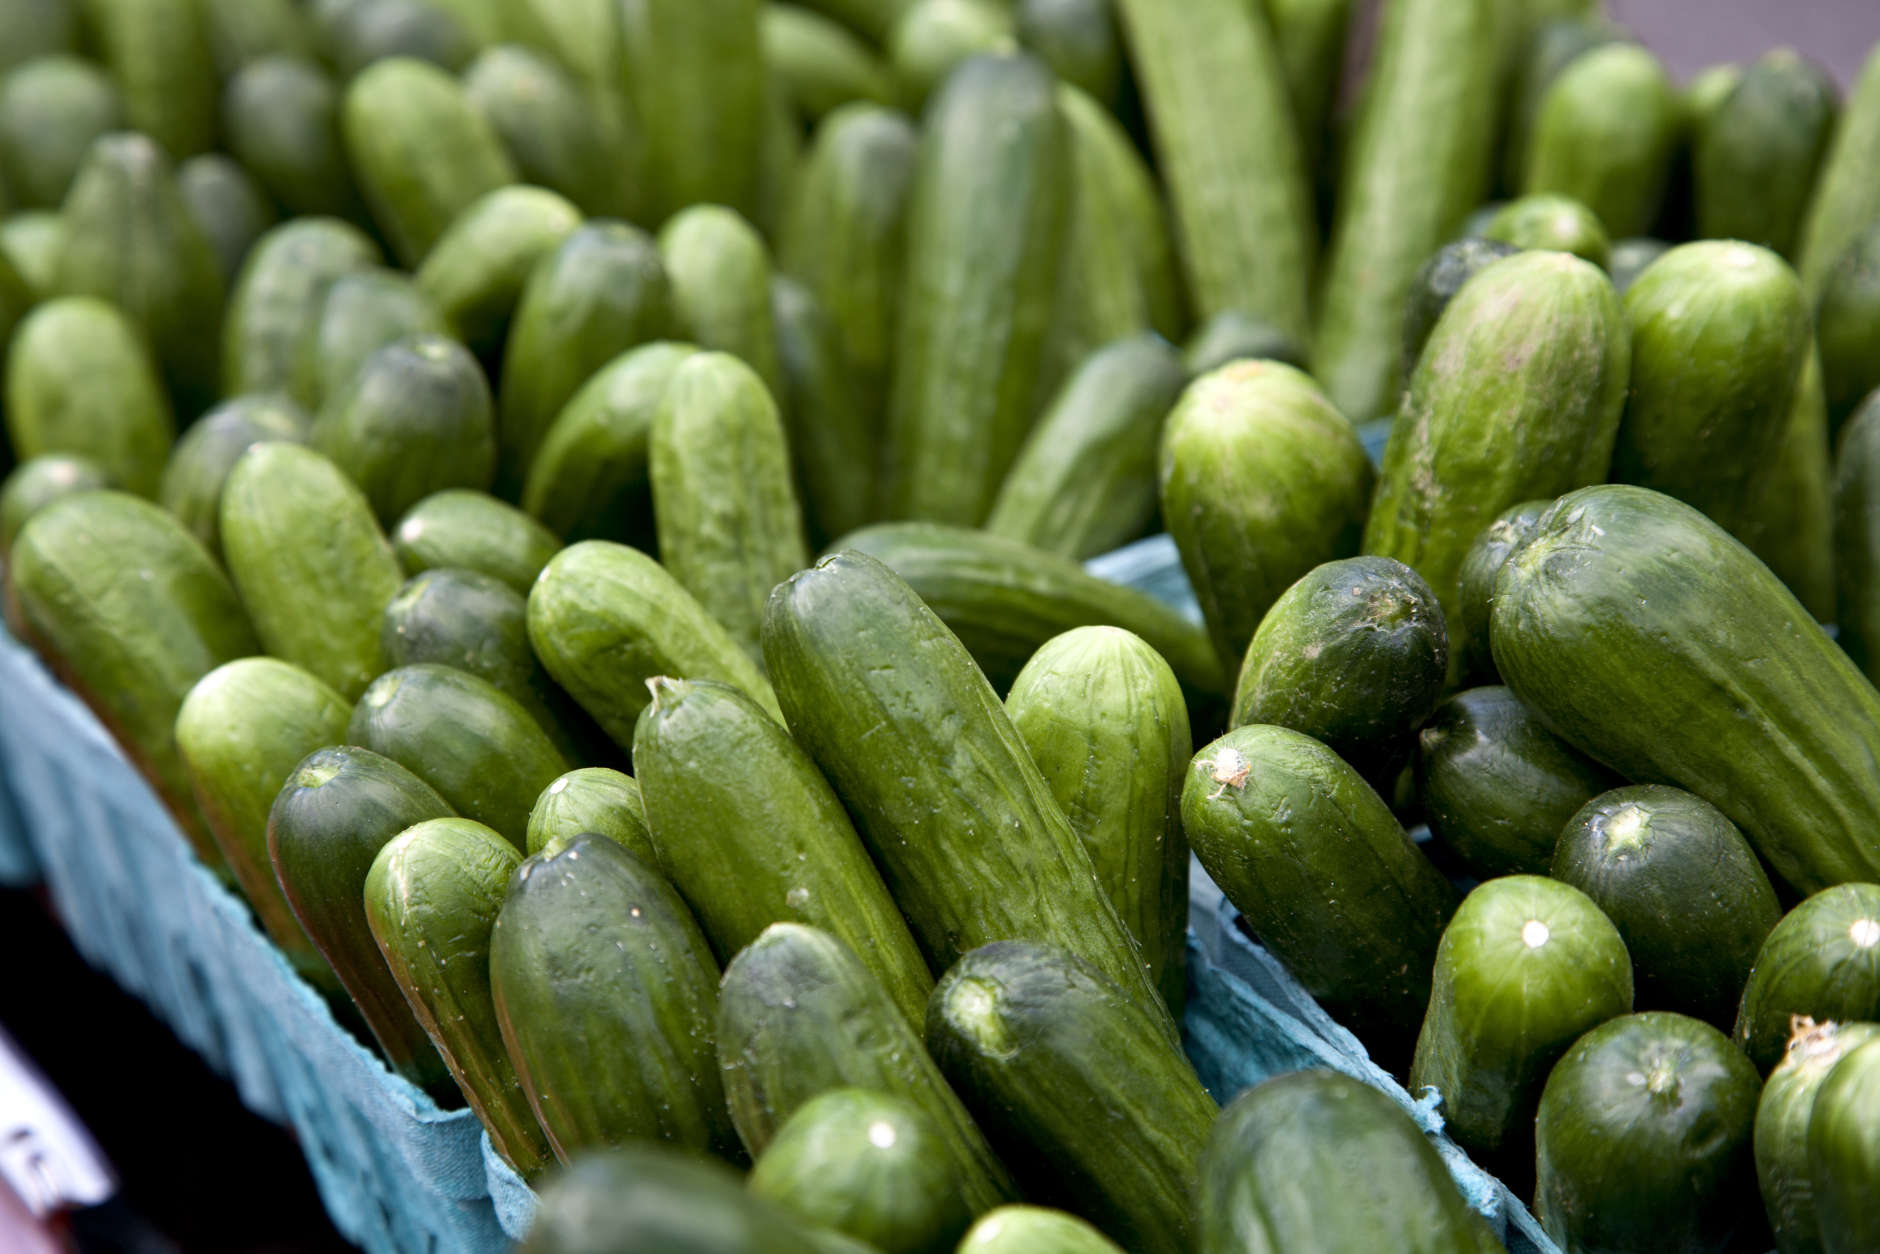 Cucumbers and other fresh produce are displayed for sale at a farmers market in Arlington, Va., Saturday, April 13, 2013.  (AP Photo/J. Scott Applewhite)